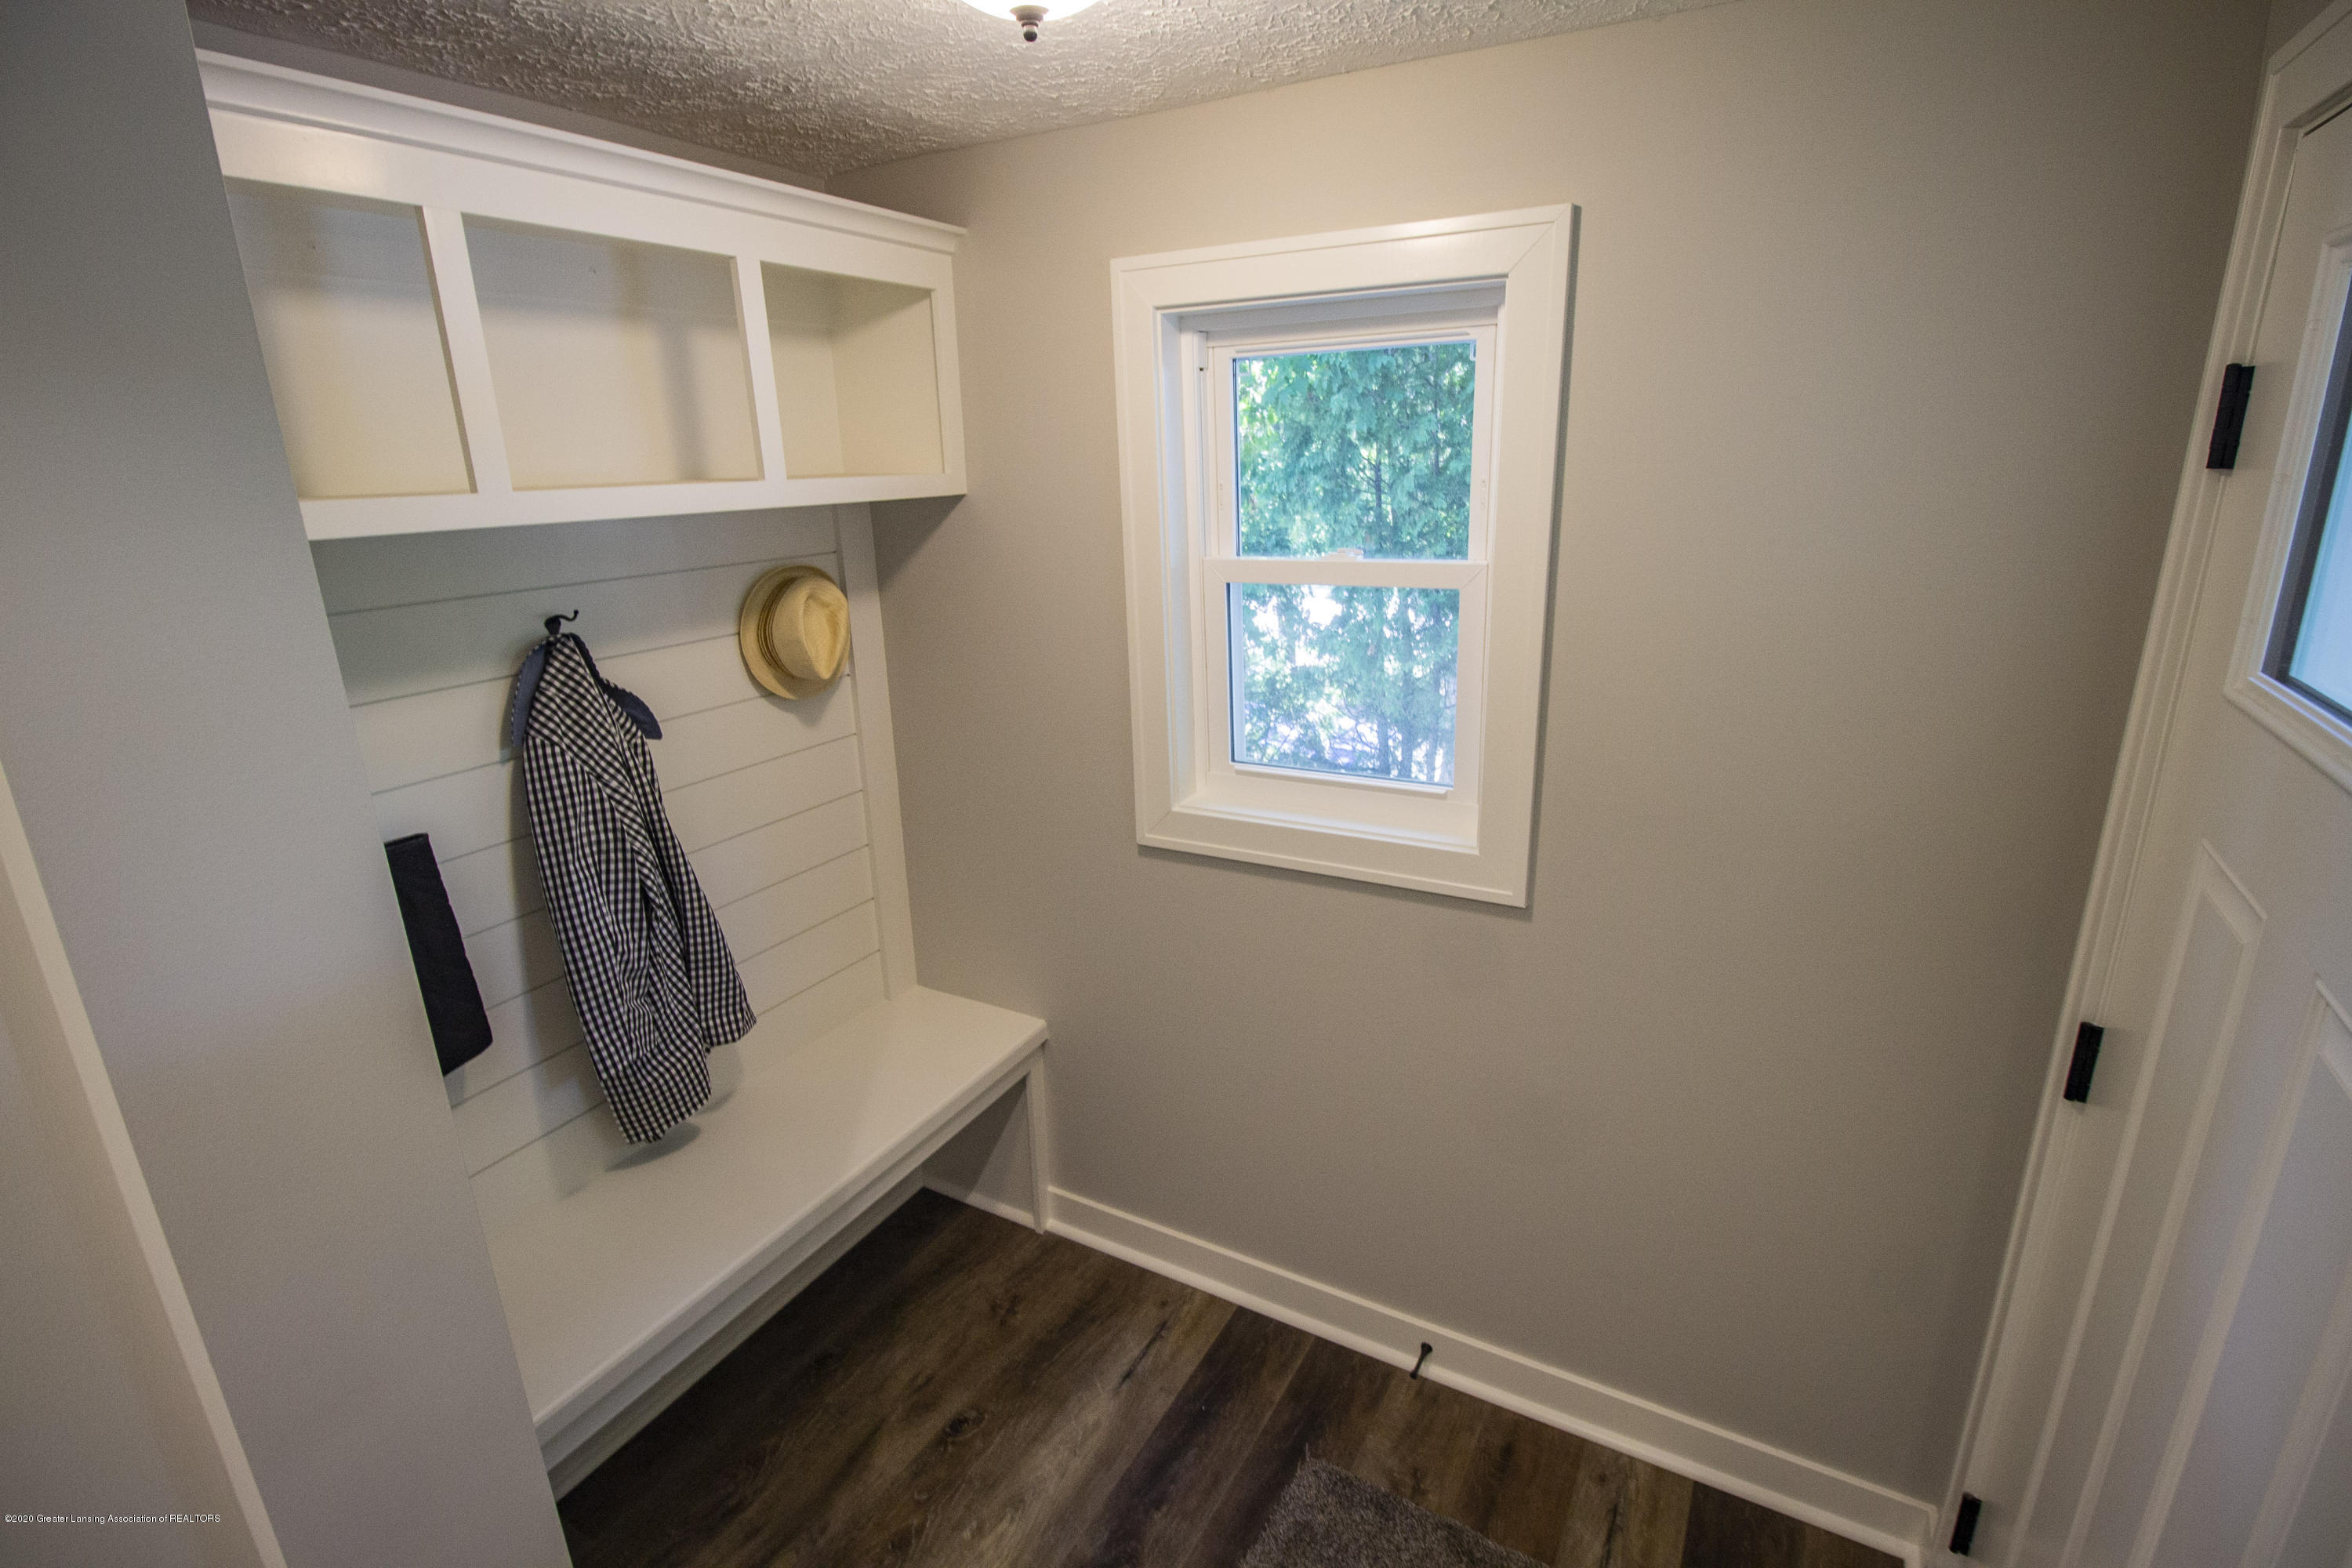 211 Russell St - 17. Russell Mudroom - 17